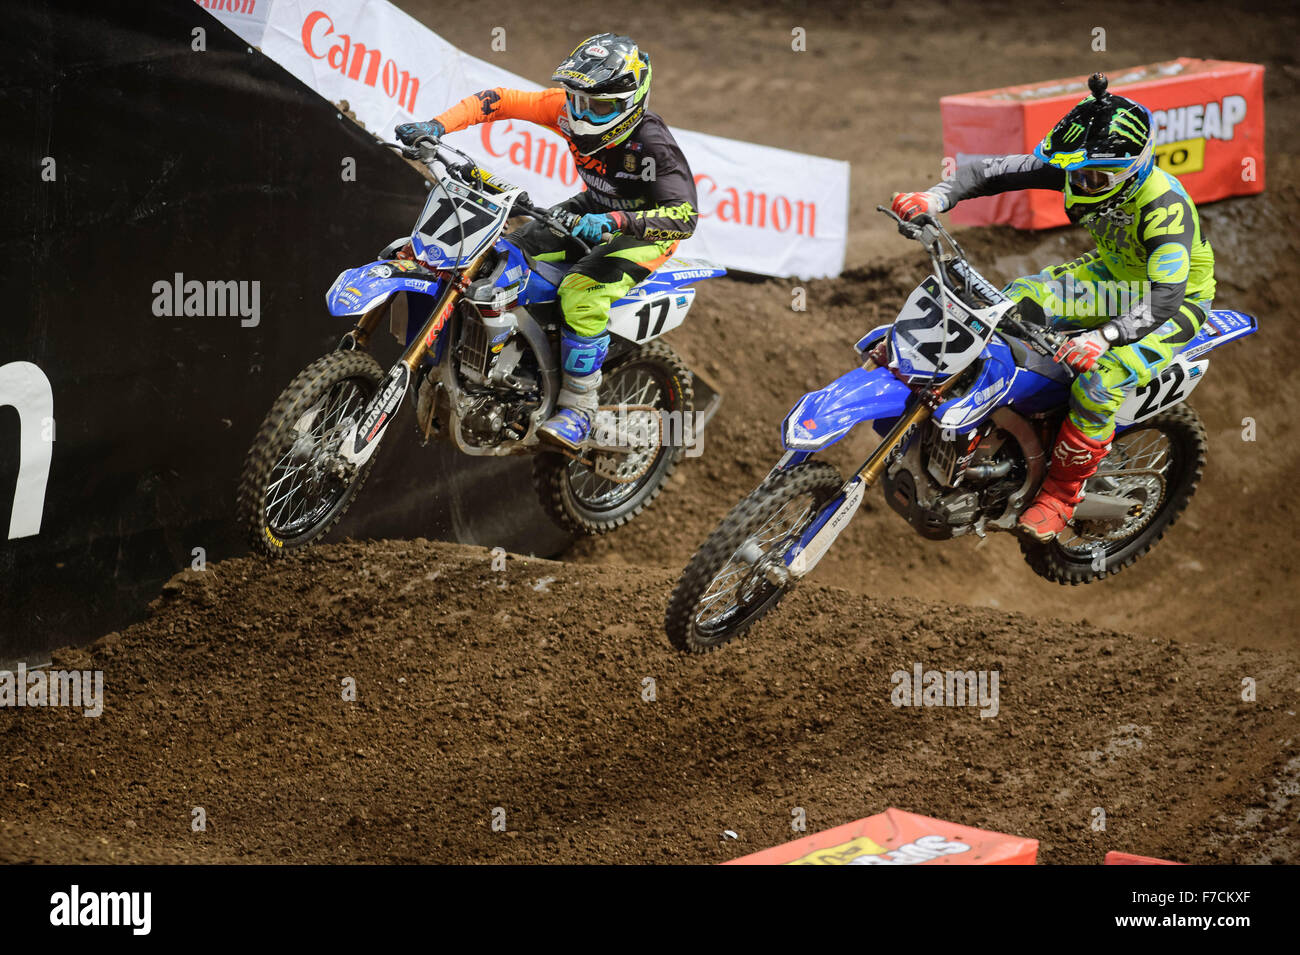 Sydney Olympic Park Australia 29th Nov 2015 The AUS X Open Motocross Day Two Chad Reed Rider Of 22 Yamaha In A Last Lap Thriller With 17